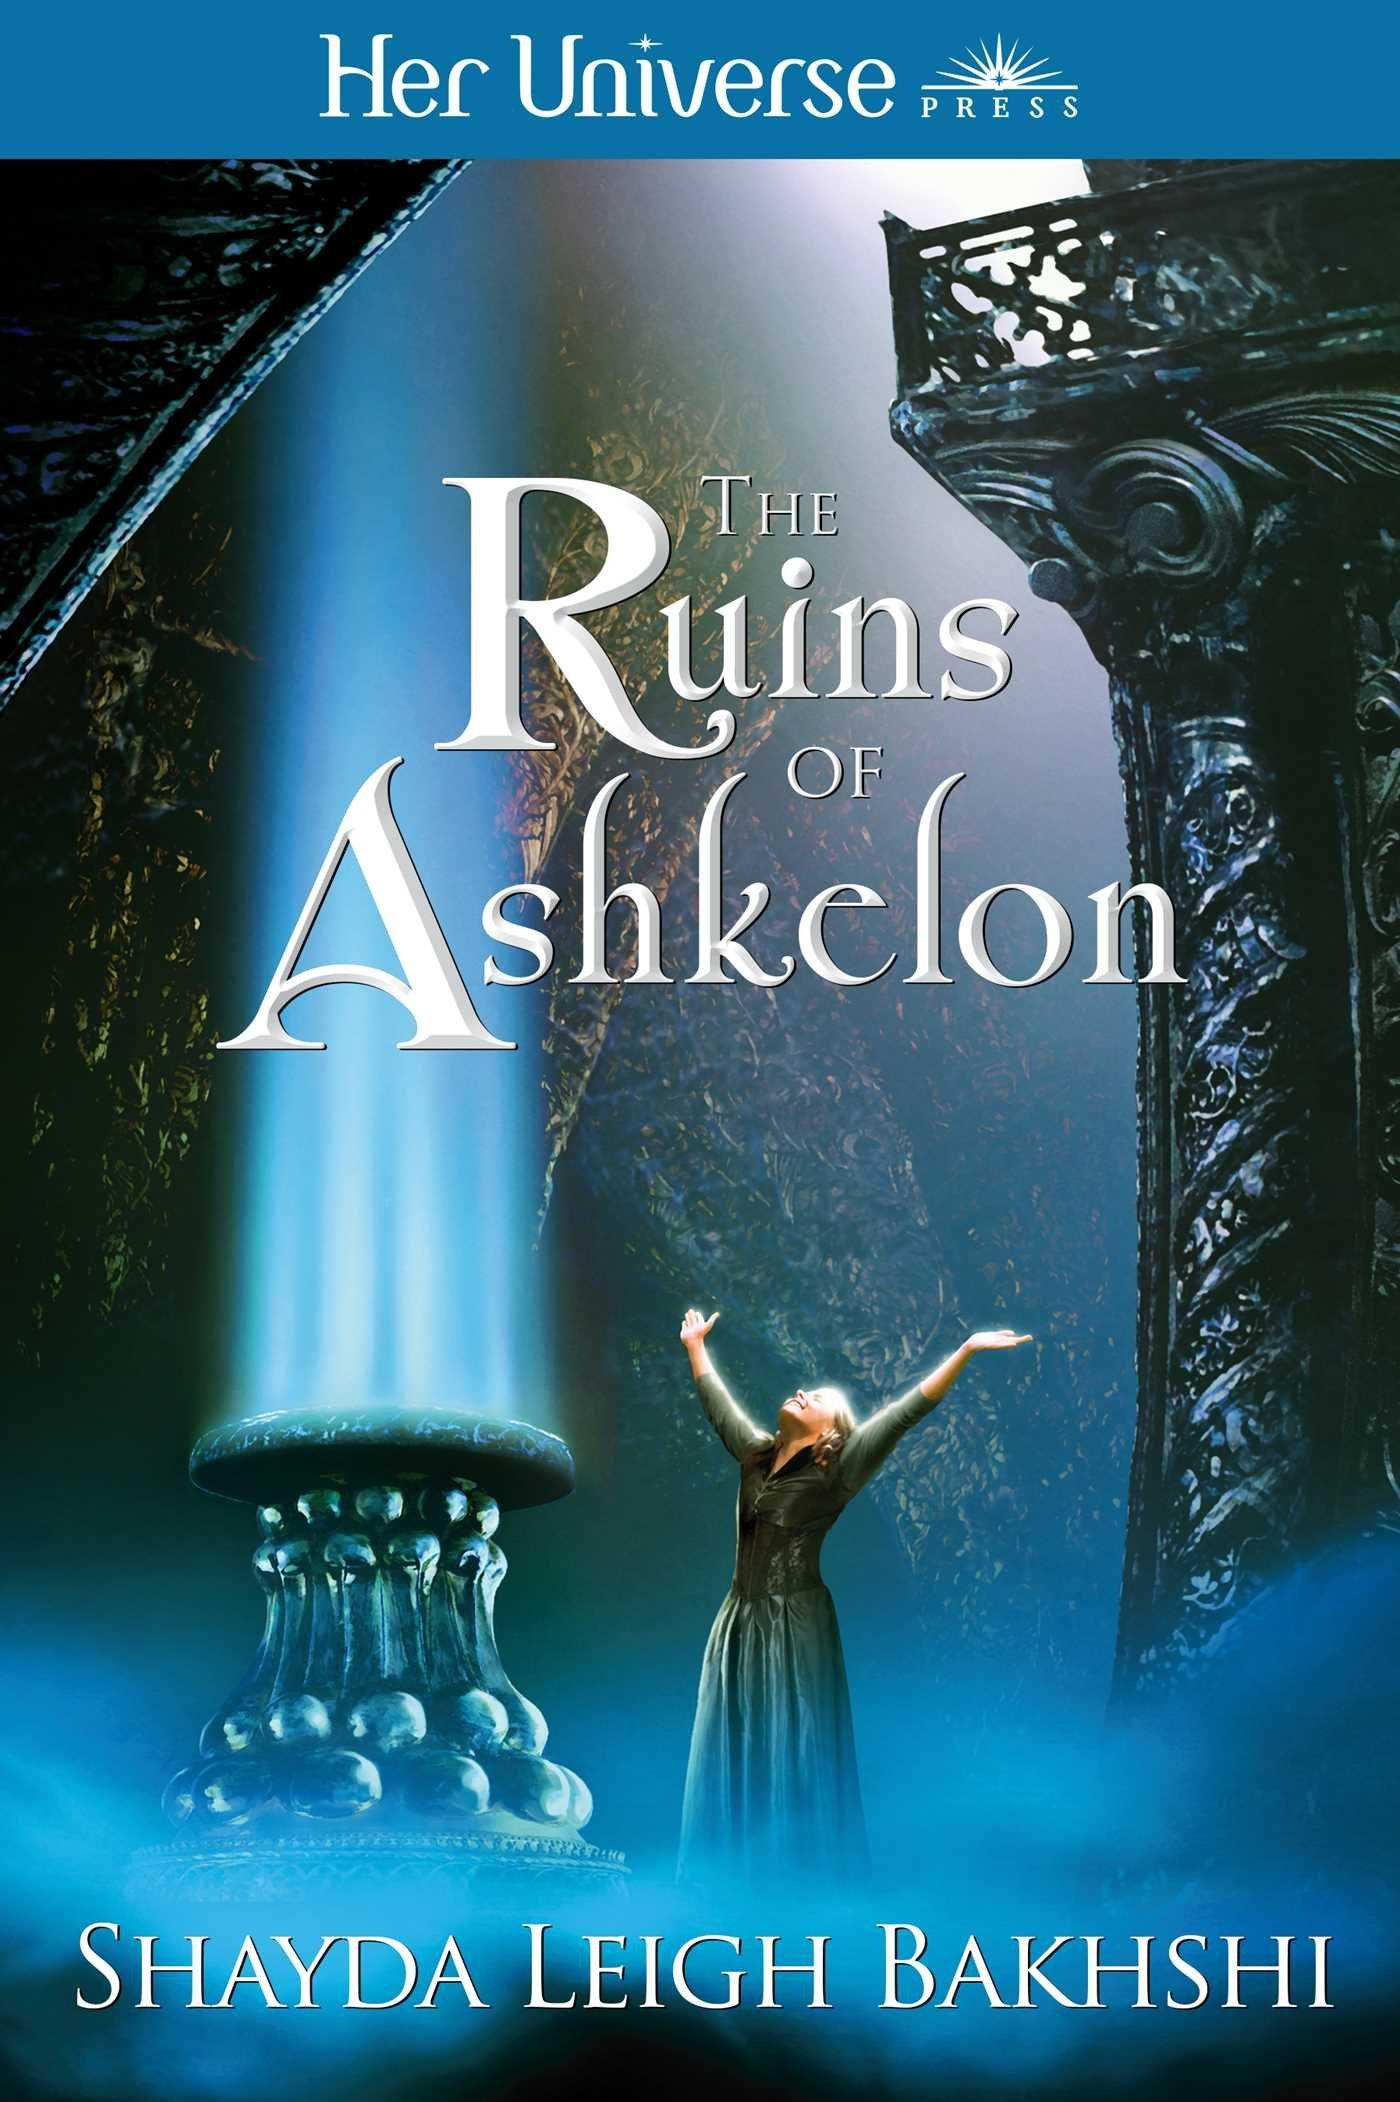 Buy The Ruins of Ashkelon Book Online at Low Prices in India | The